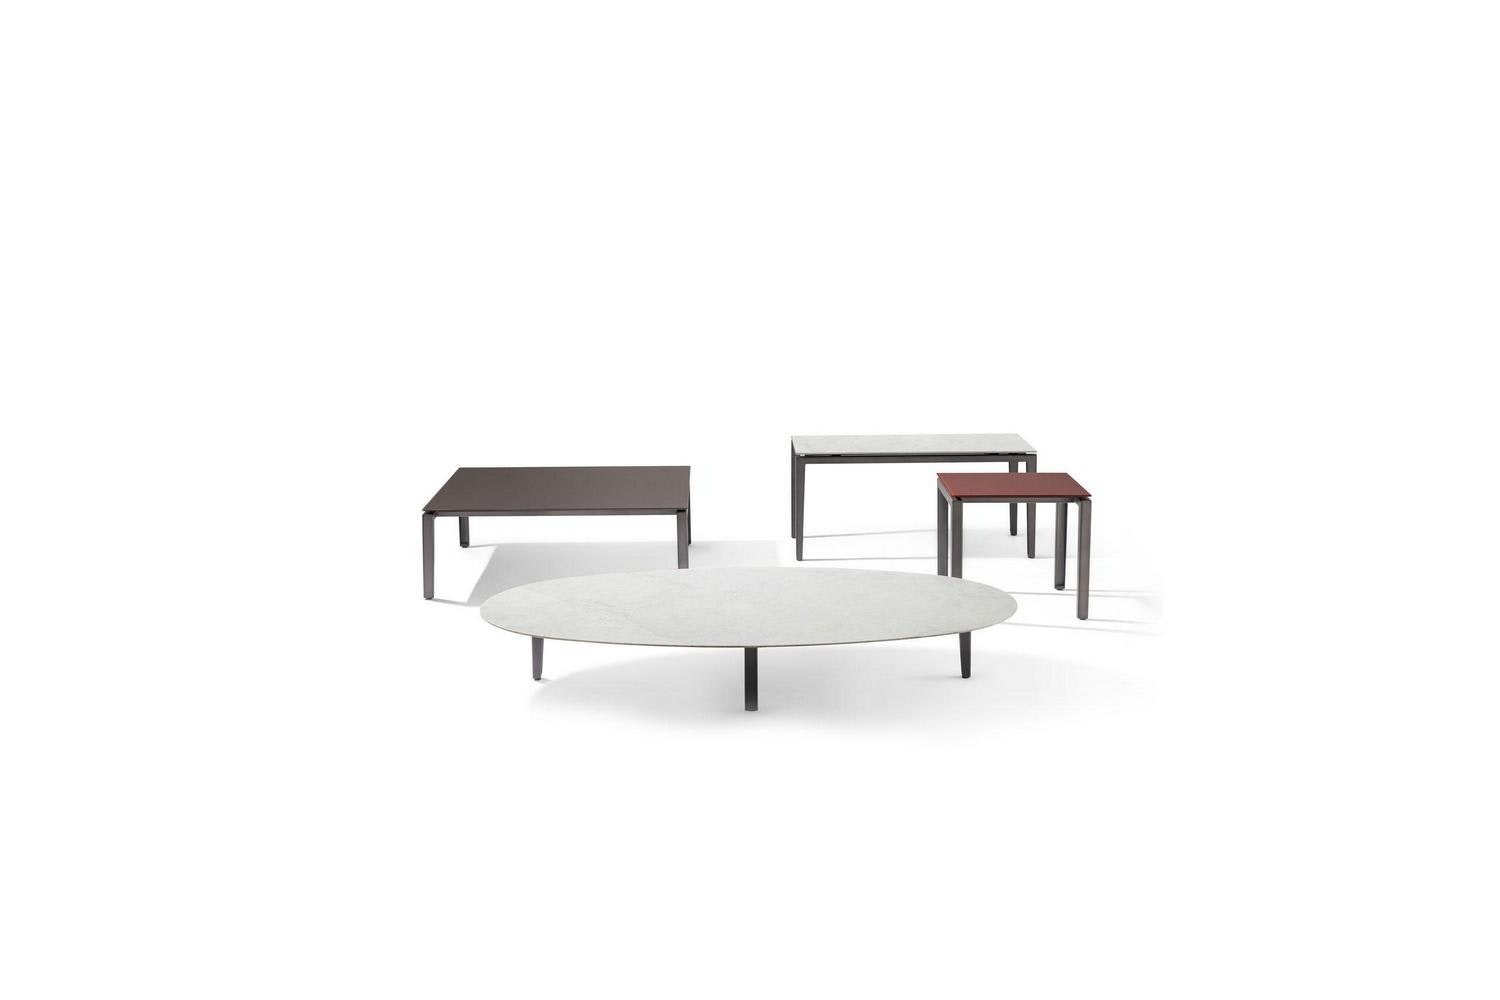 205 Scighera Coffee Table by Piero Lissoni for Cassina